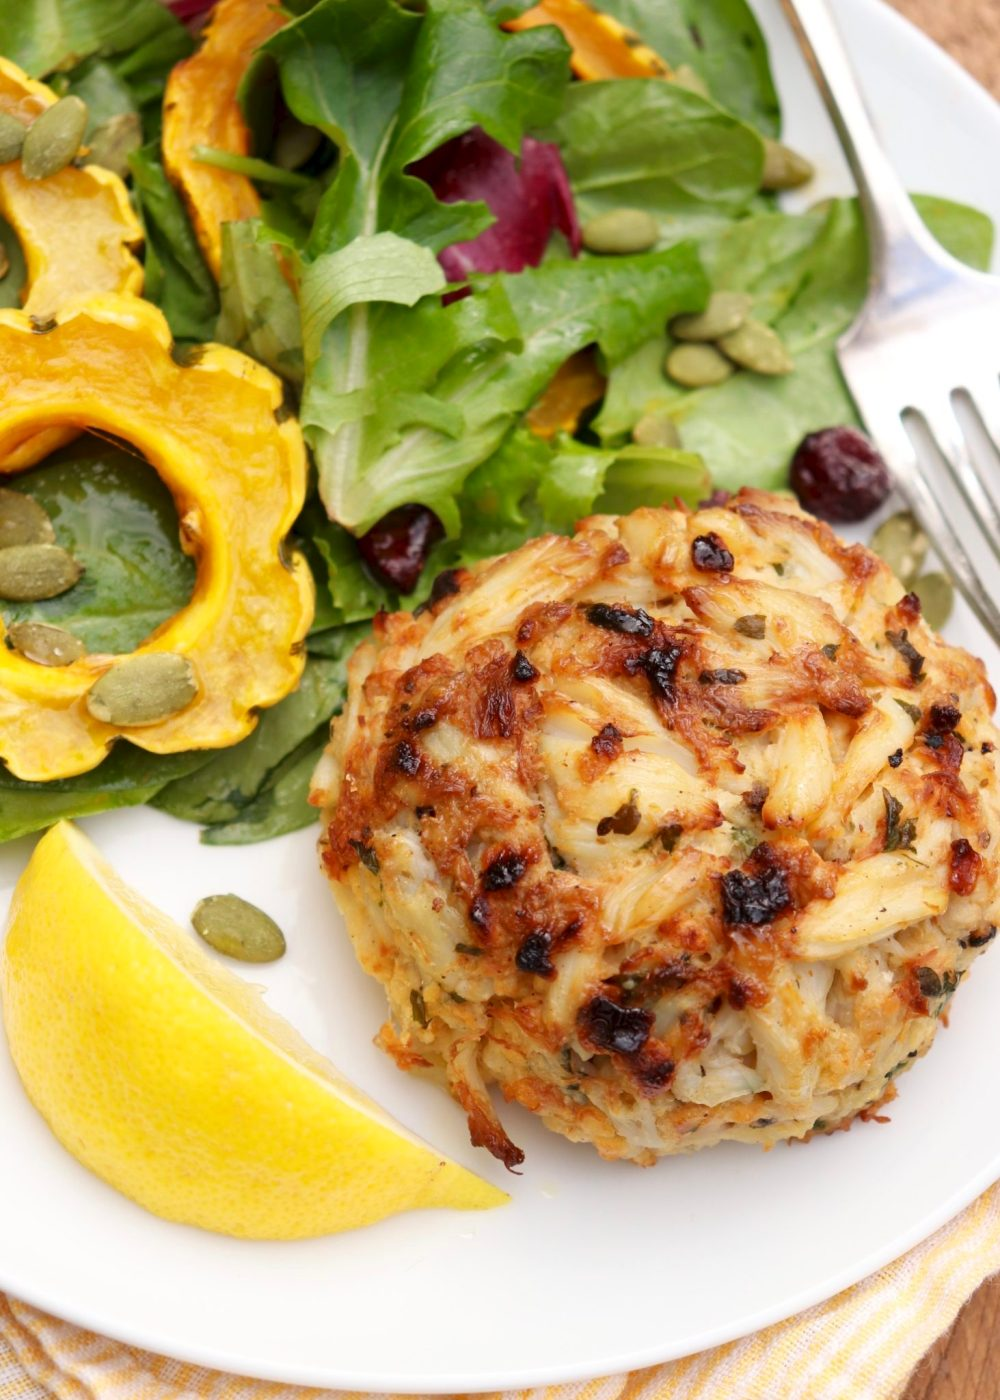 Maryland Crab Cakes - No fryer needed for crisp edgesand classiccrab cake flavor. Packed withtender chunks of meat, this meal is elegant enough forspecial occasions yet easy enough for a busy weeknight.